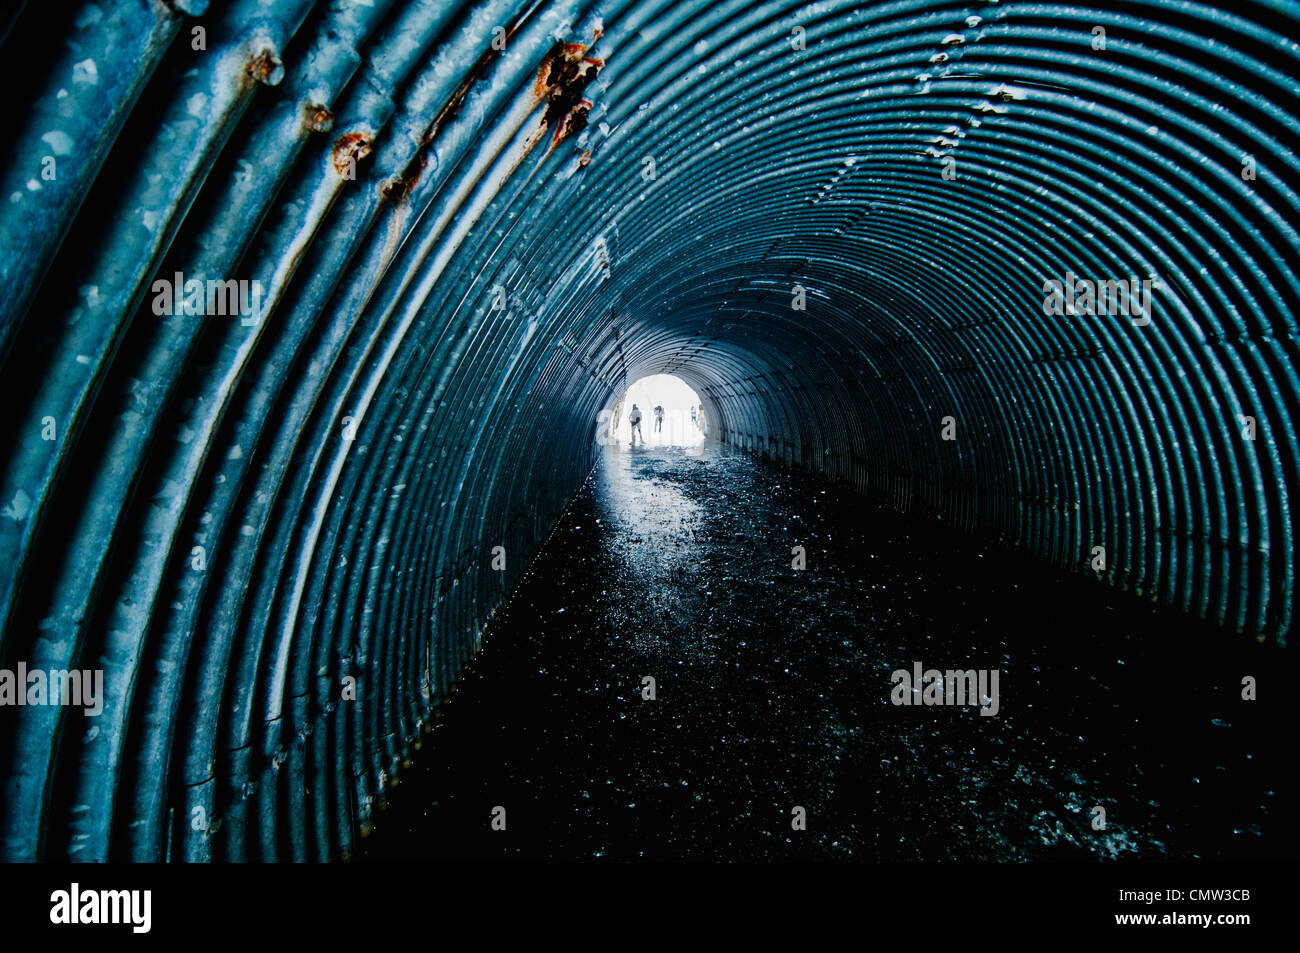 People ice skating in tunnel - Stock Image